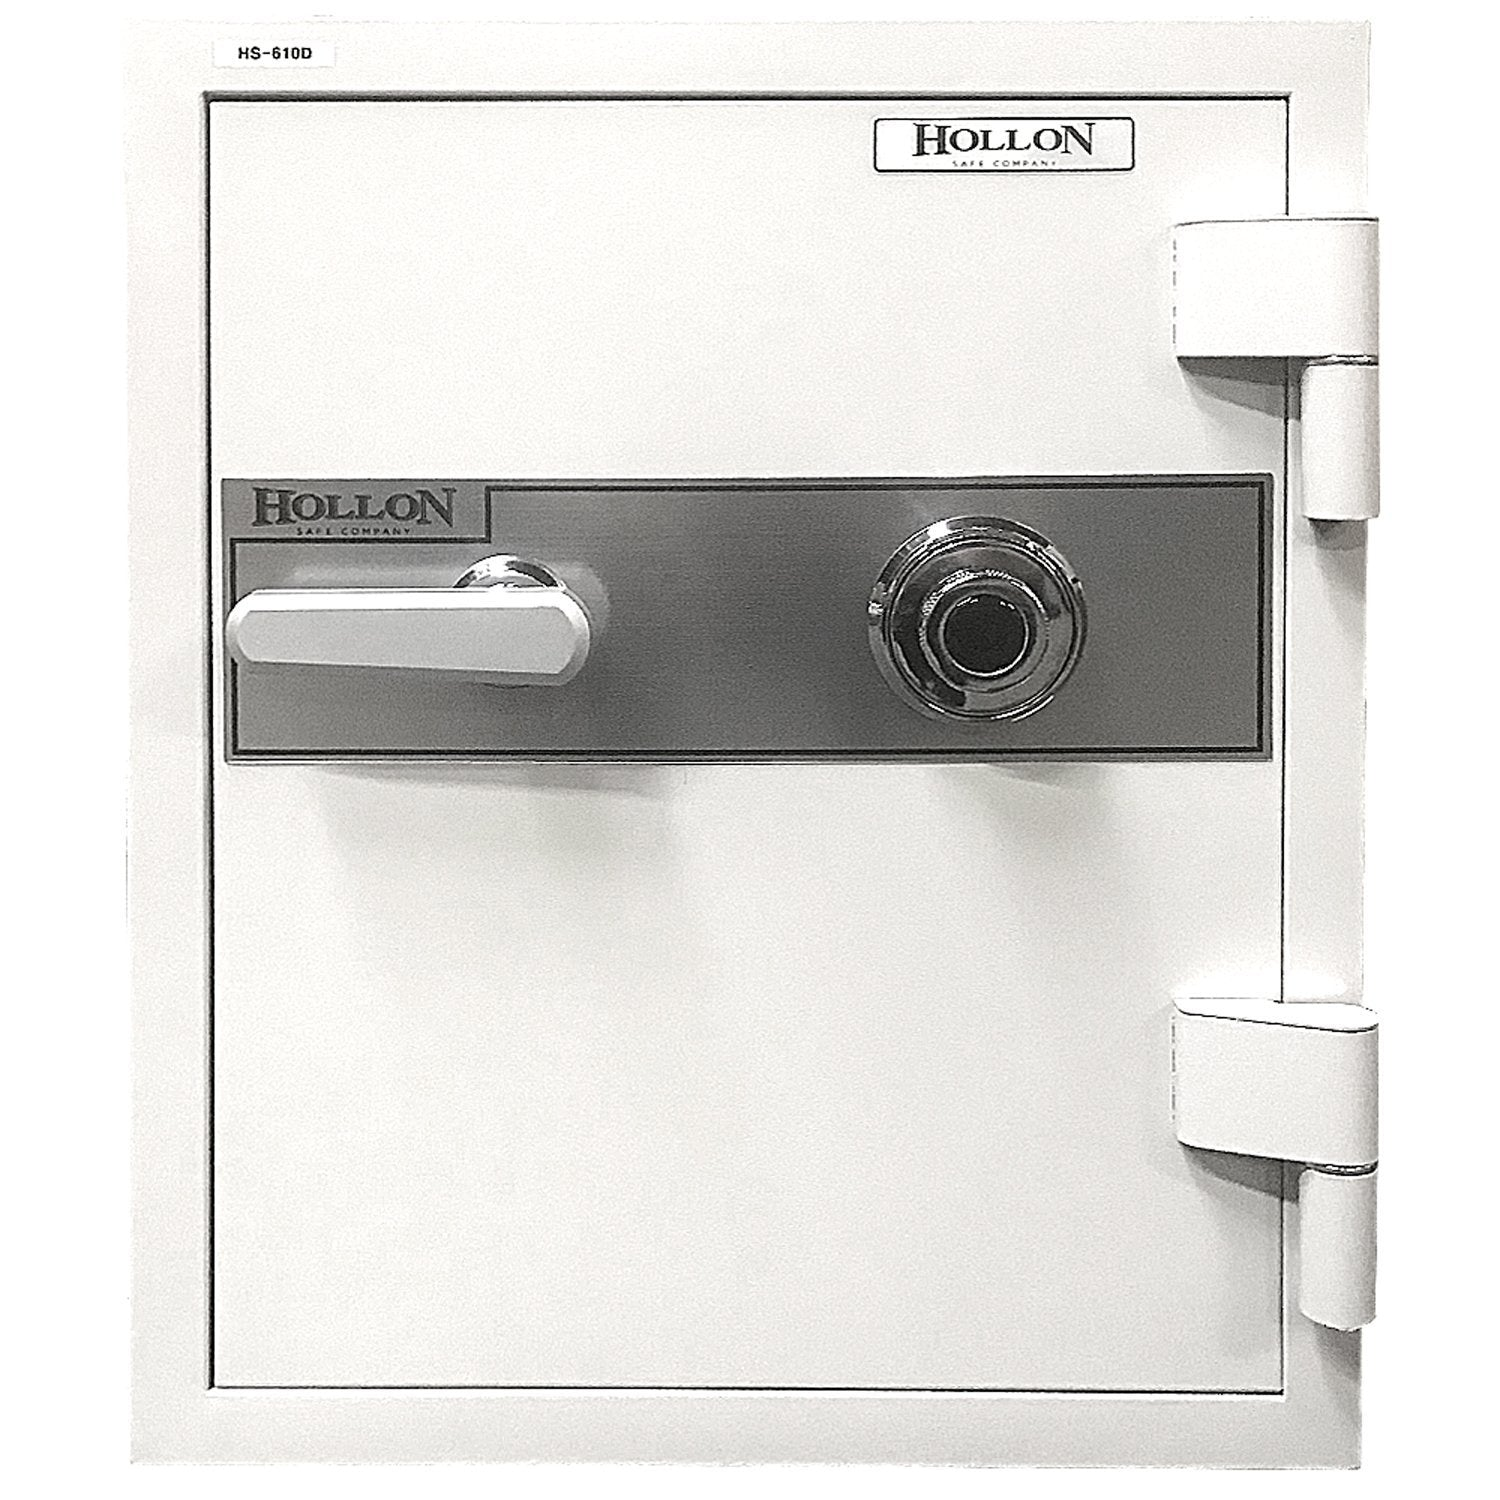 Hollon Safe Home Safe Hollon Safe HS-610D 2 Hr Fire Resistant Home Safe, Dial Lock Safe HS-610D